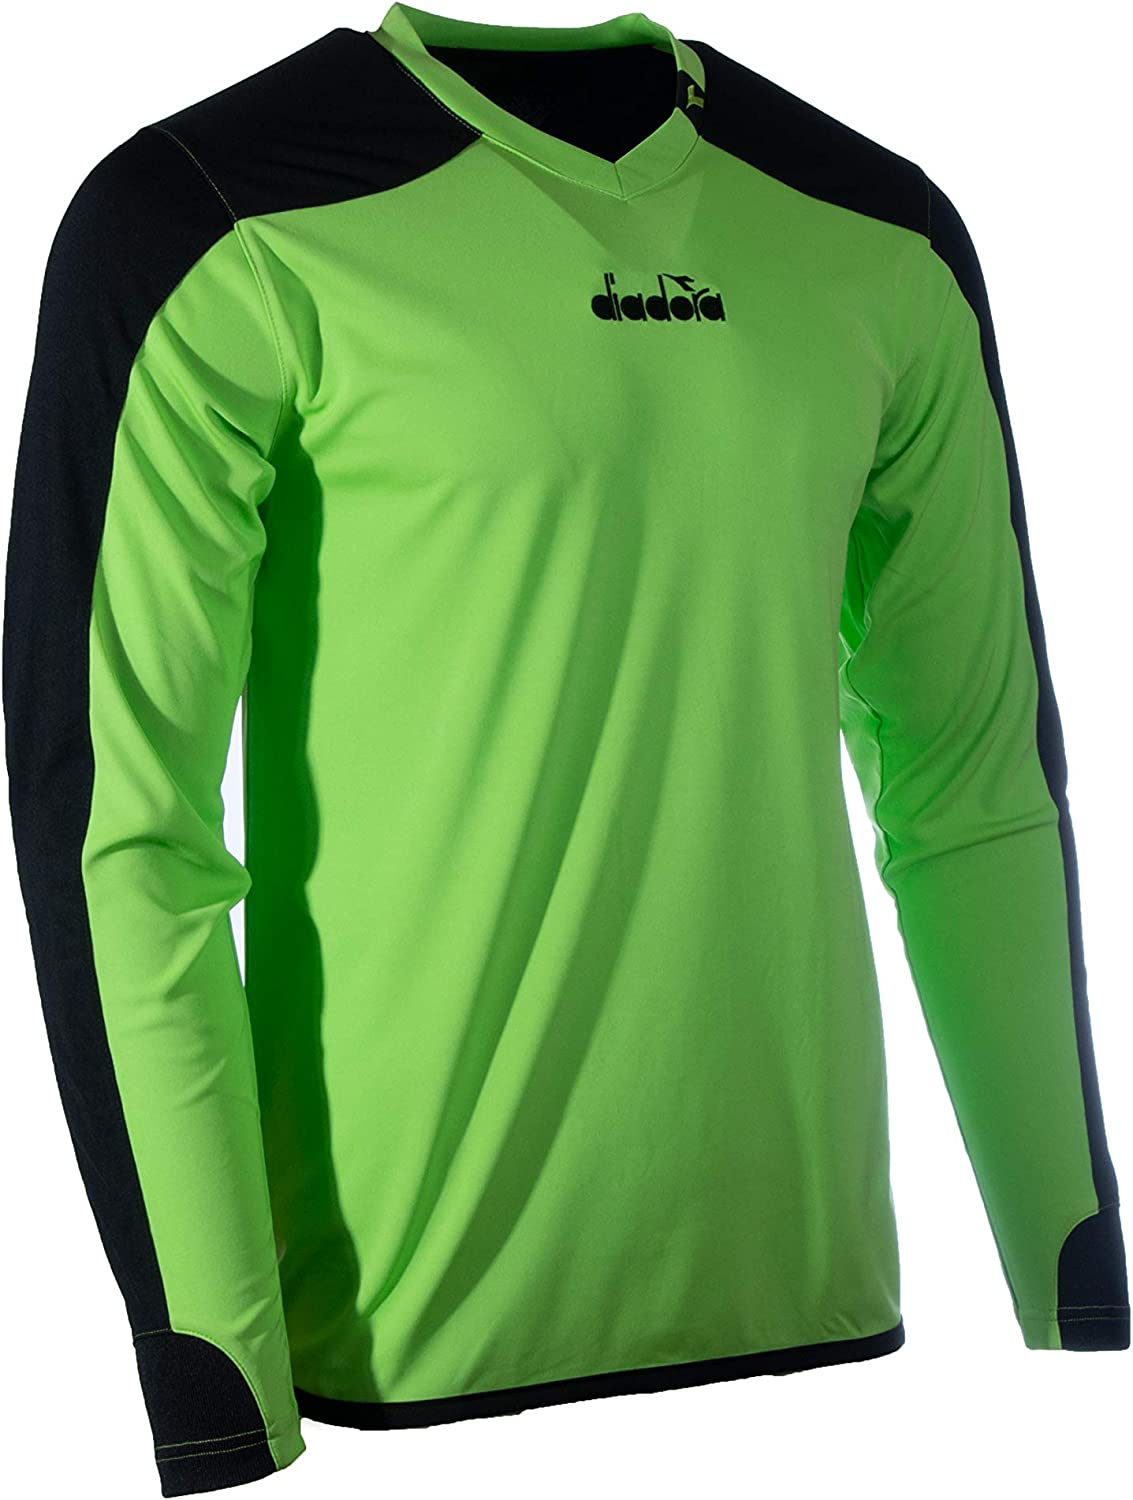 Diadora Adult Limited time cheap sale Enzo Soccer Goalkeeper High quality new Jersey